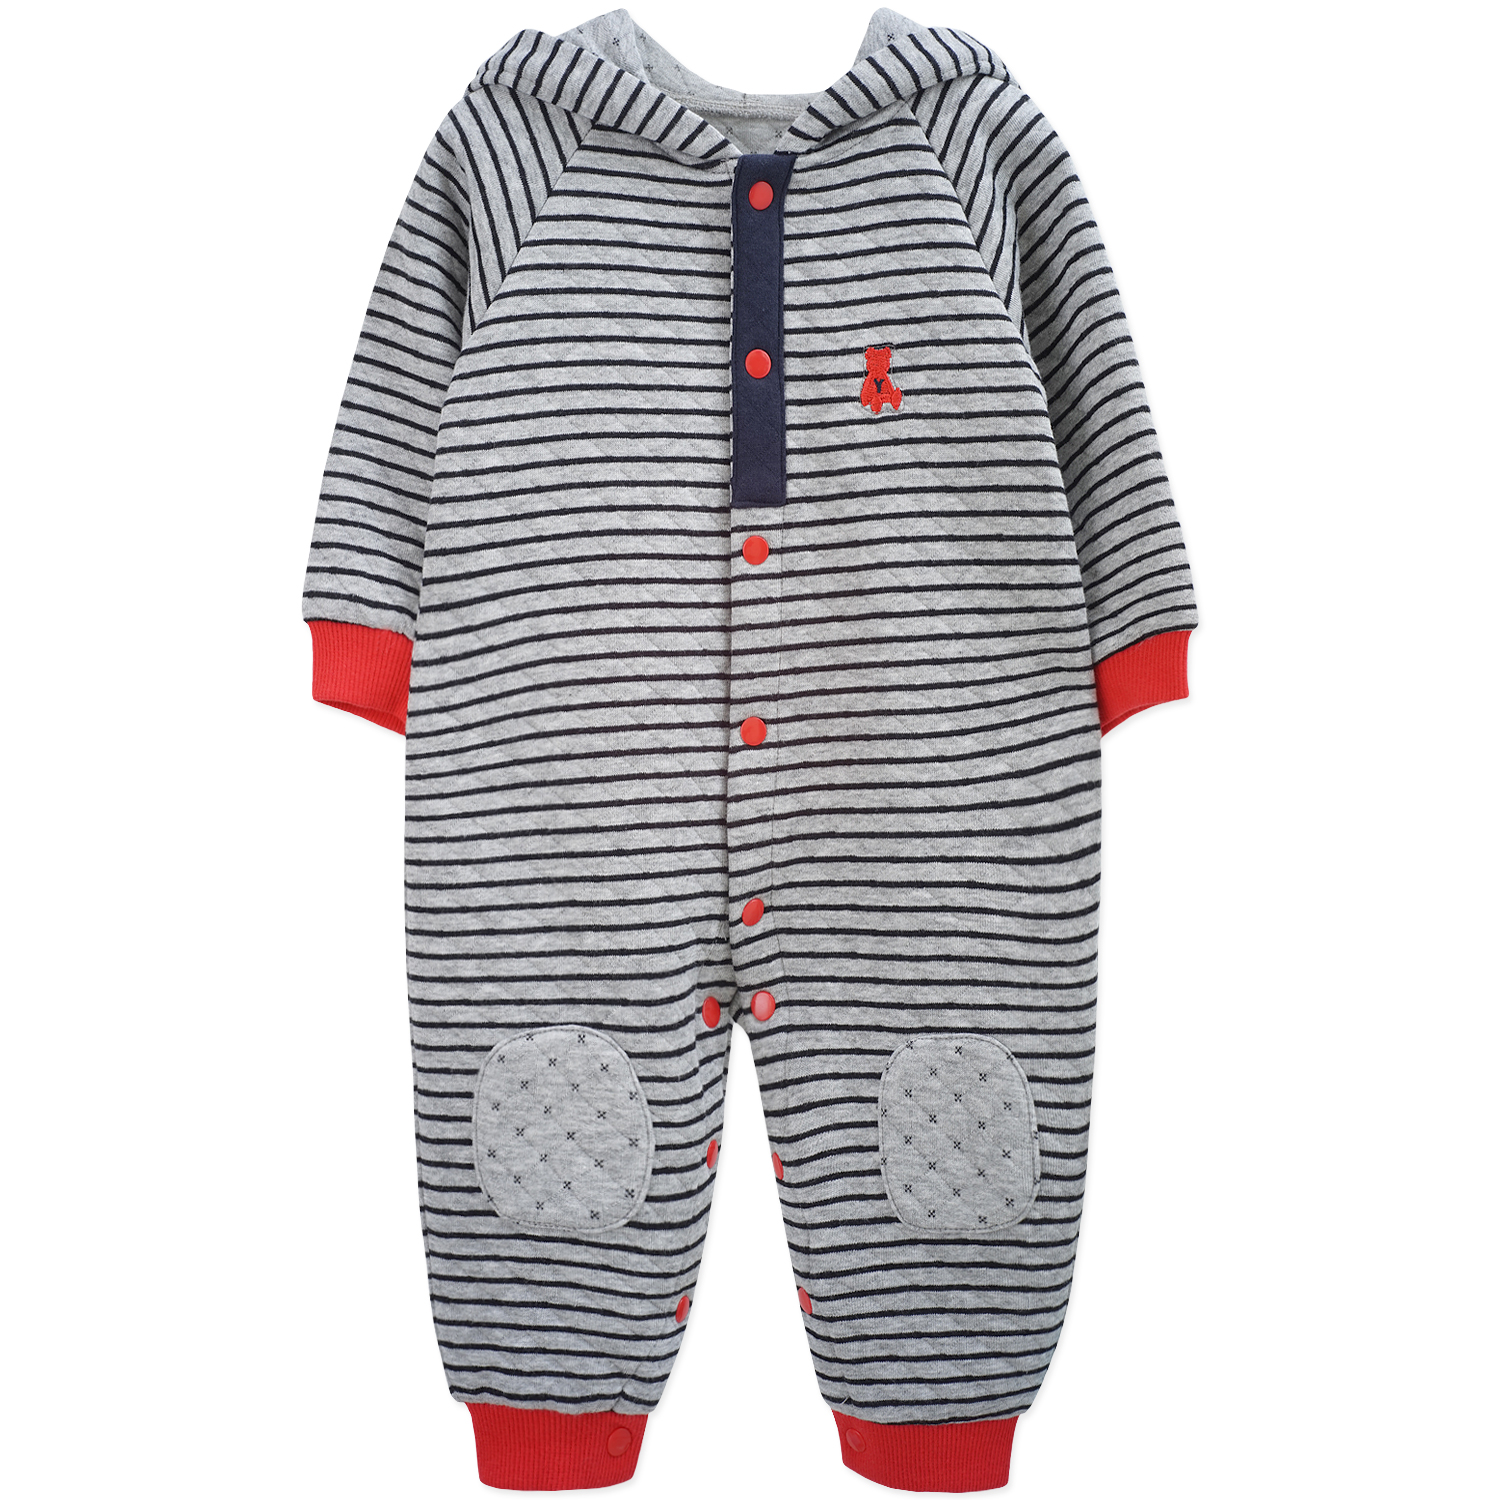 2018 Baby Girl Top Fashion Sale Baby Boys Yingzifang Rompers Cute Cartoon Cotton Clothes Newborn Infant Autumn Winter Jumpsuits mother nest 3sets lot wholesale autumn toddle girl long sleeve baby clothing one piece boys baby pajamas infant clothes rompers